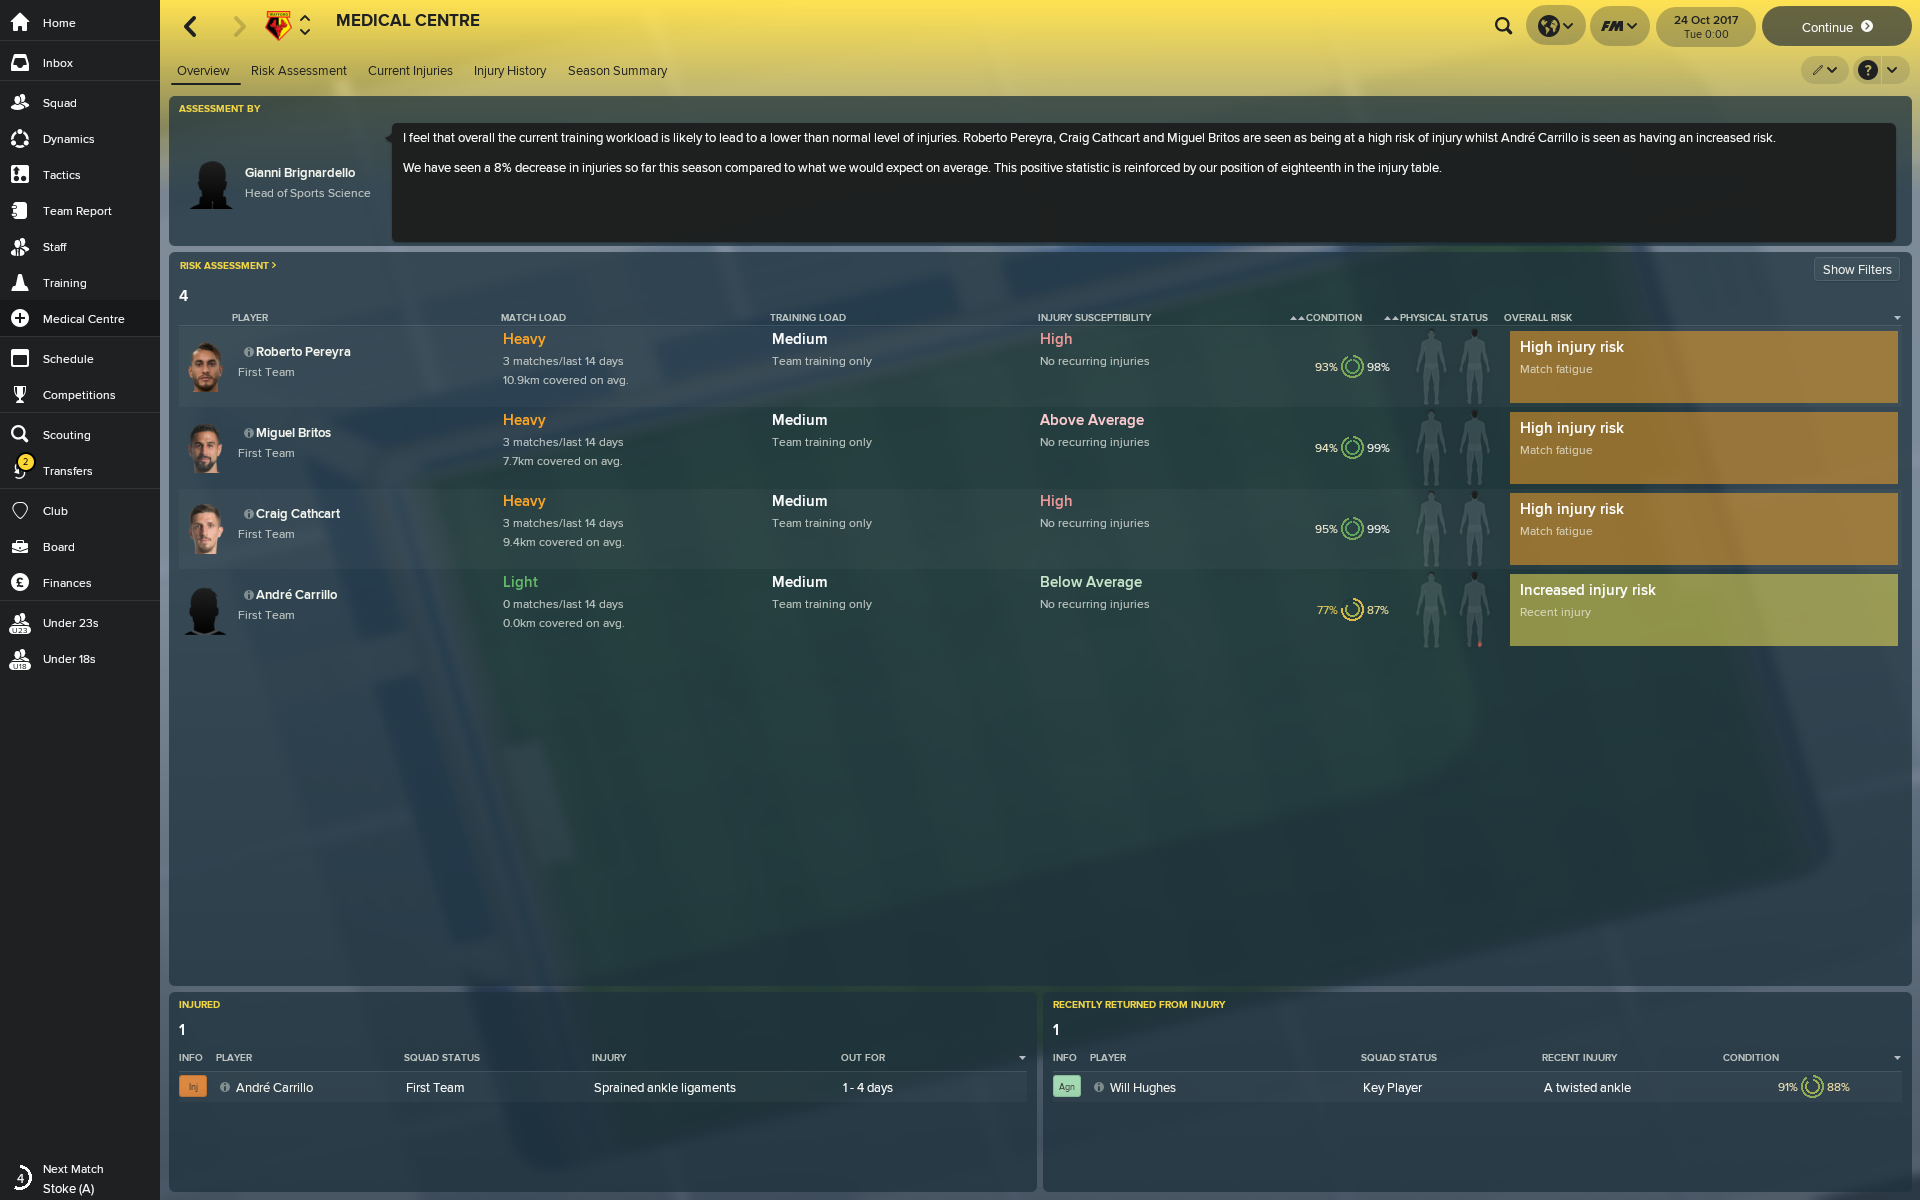 FootballManager 2018_Medical_Centre_Overview